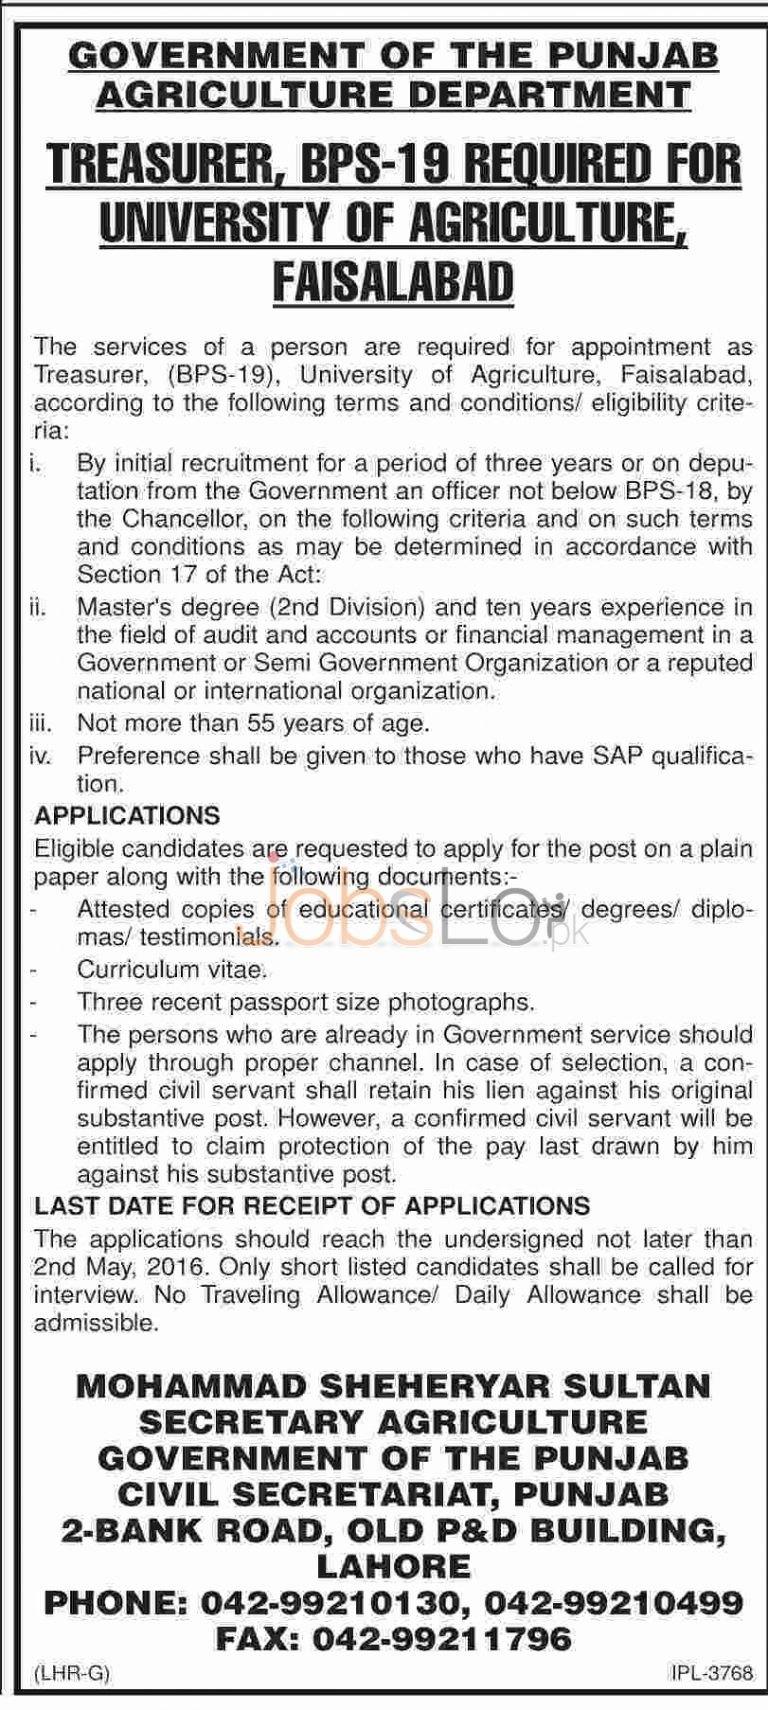 University of Agriculture Faisalabad Jobs April 2016 For Treasurer Eligibility Criteria